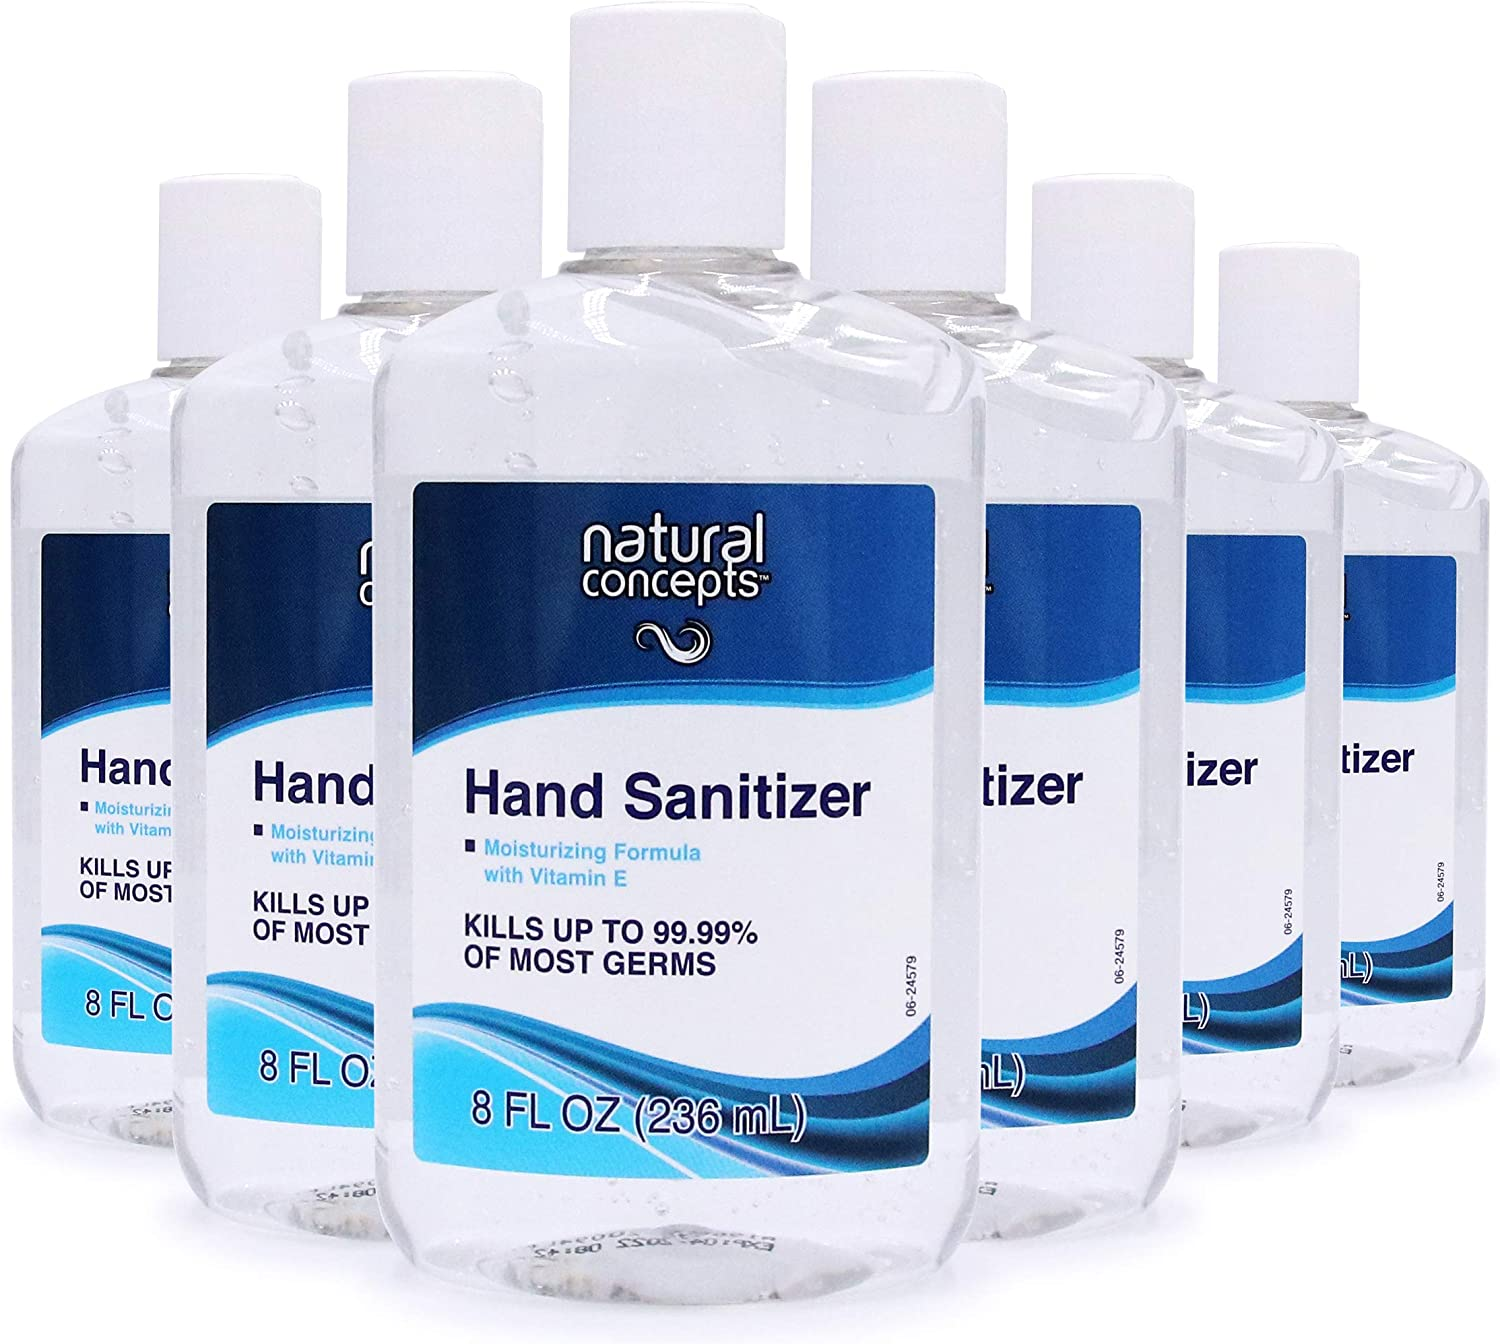 Natural Concepts Hand Sanitizer Gel, 6-Pack, 8 oz Bottles, 65% Ethyl Alcohol, Protect Against Germs On-The-Go with a Refreshing Vitamin E Formula